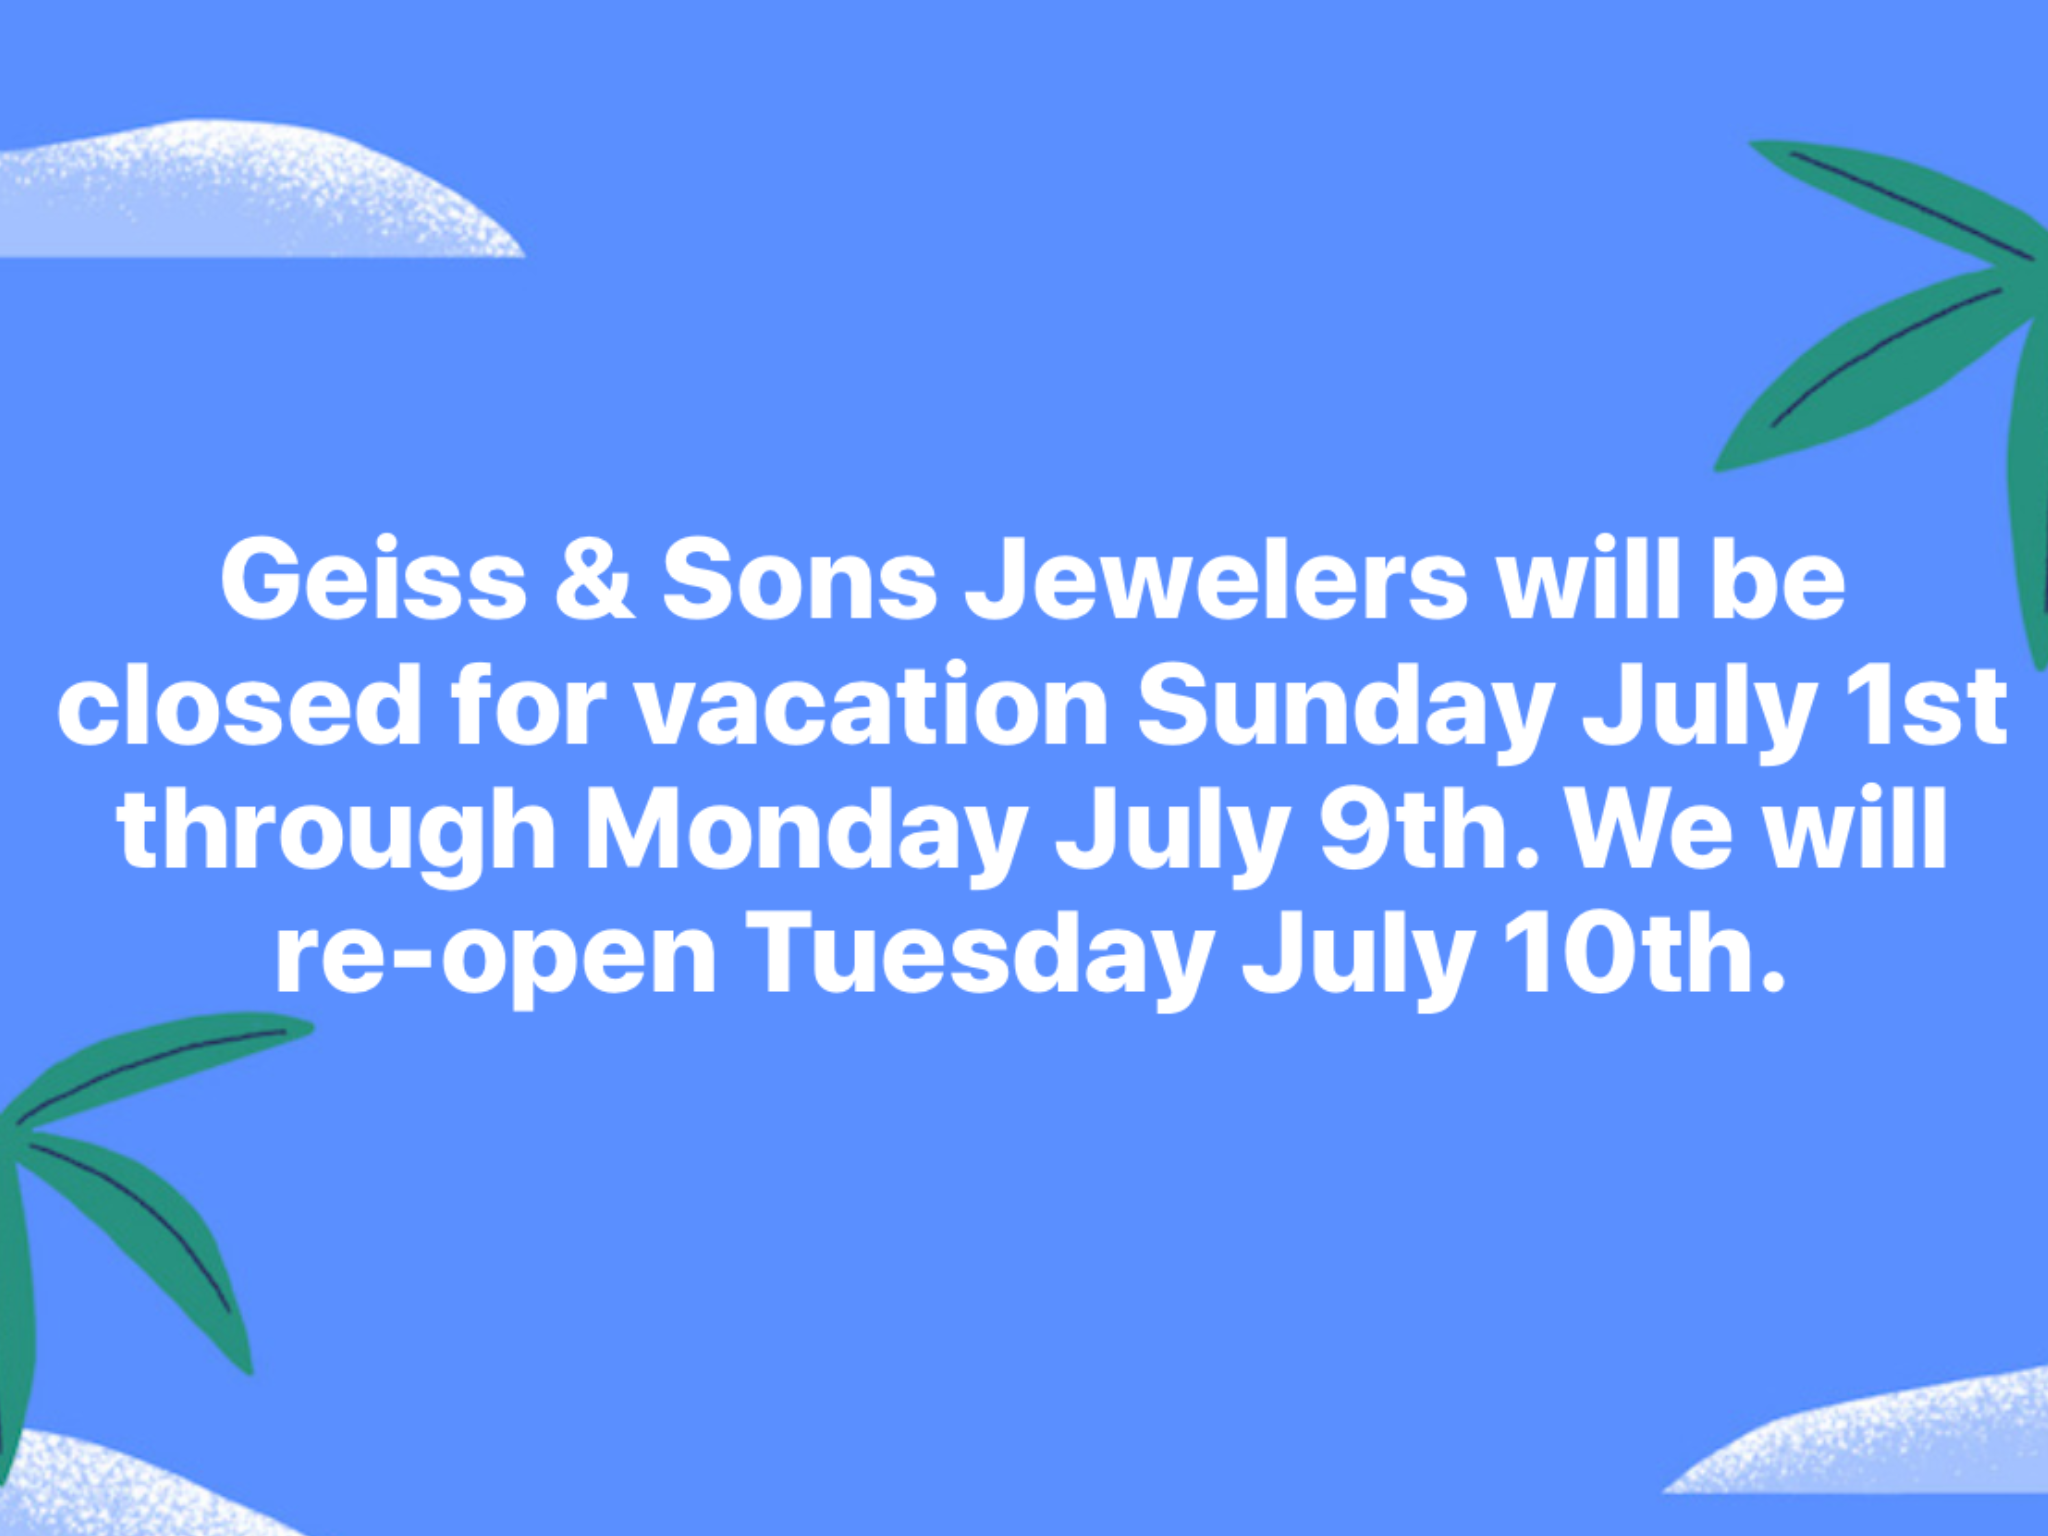 Vacation, Jewelers, Jewelry, Fine Jewelry, Jewelry Stores, Geiss and Sons, Greenville, South Carolina